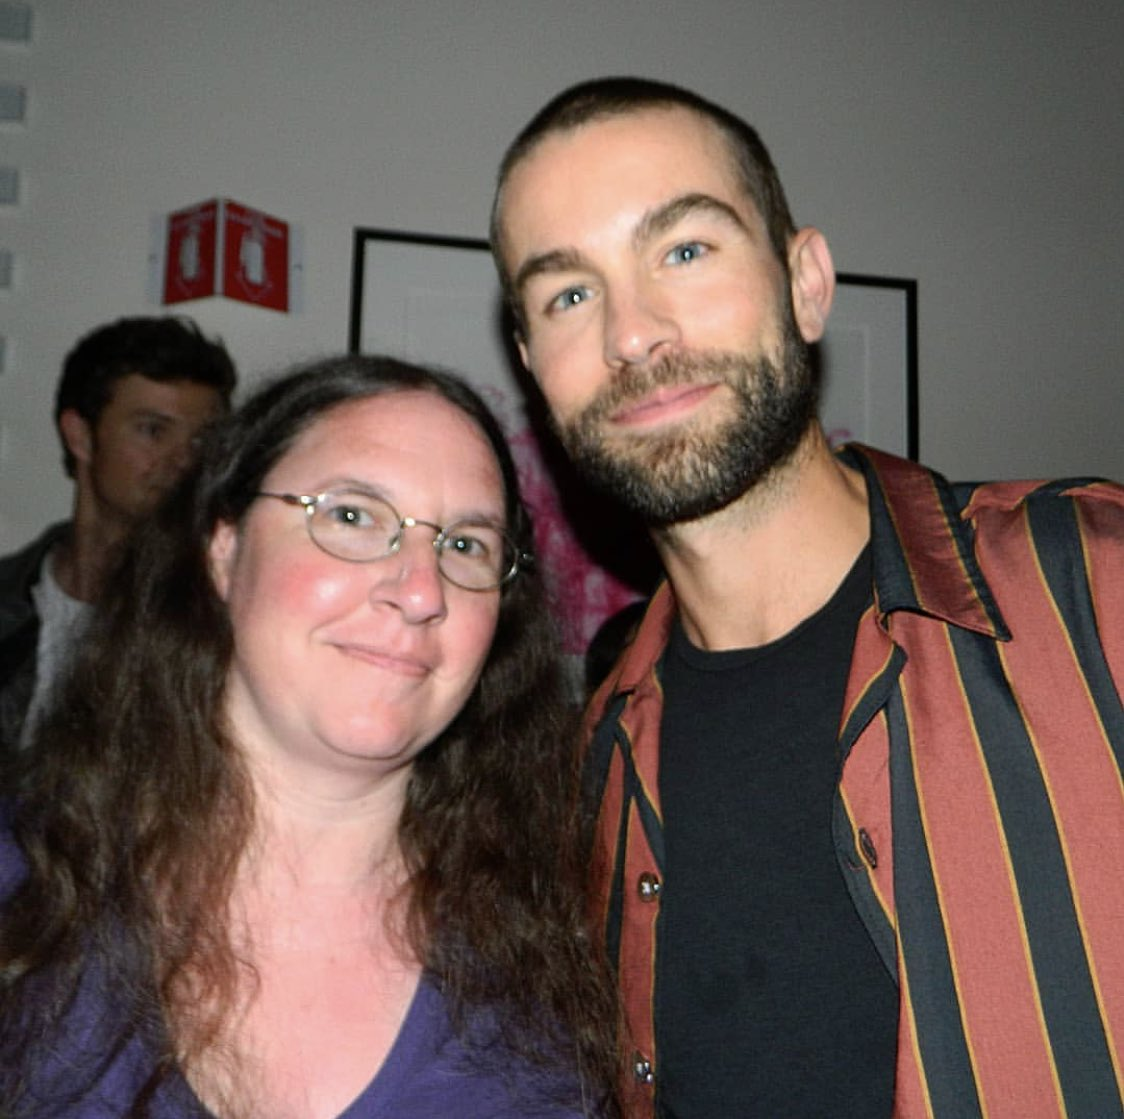 | new/old picture of chace crawford with a fan at #SDCC2019! (via xstarsgoblue28x IG) <br>http://pic.twitter.com/hxyLL6ayBd